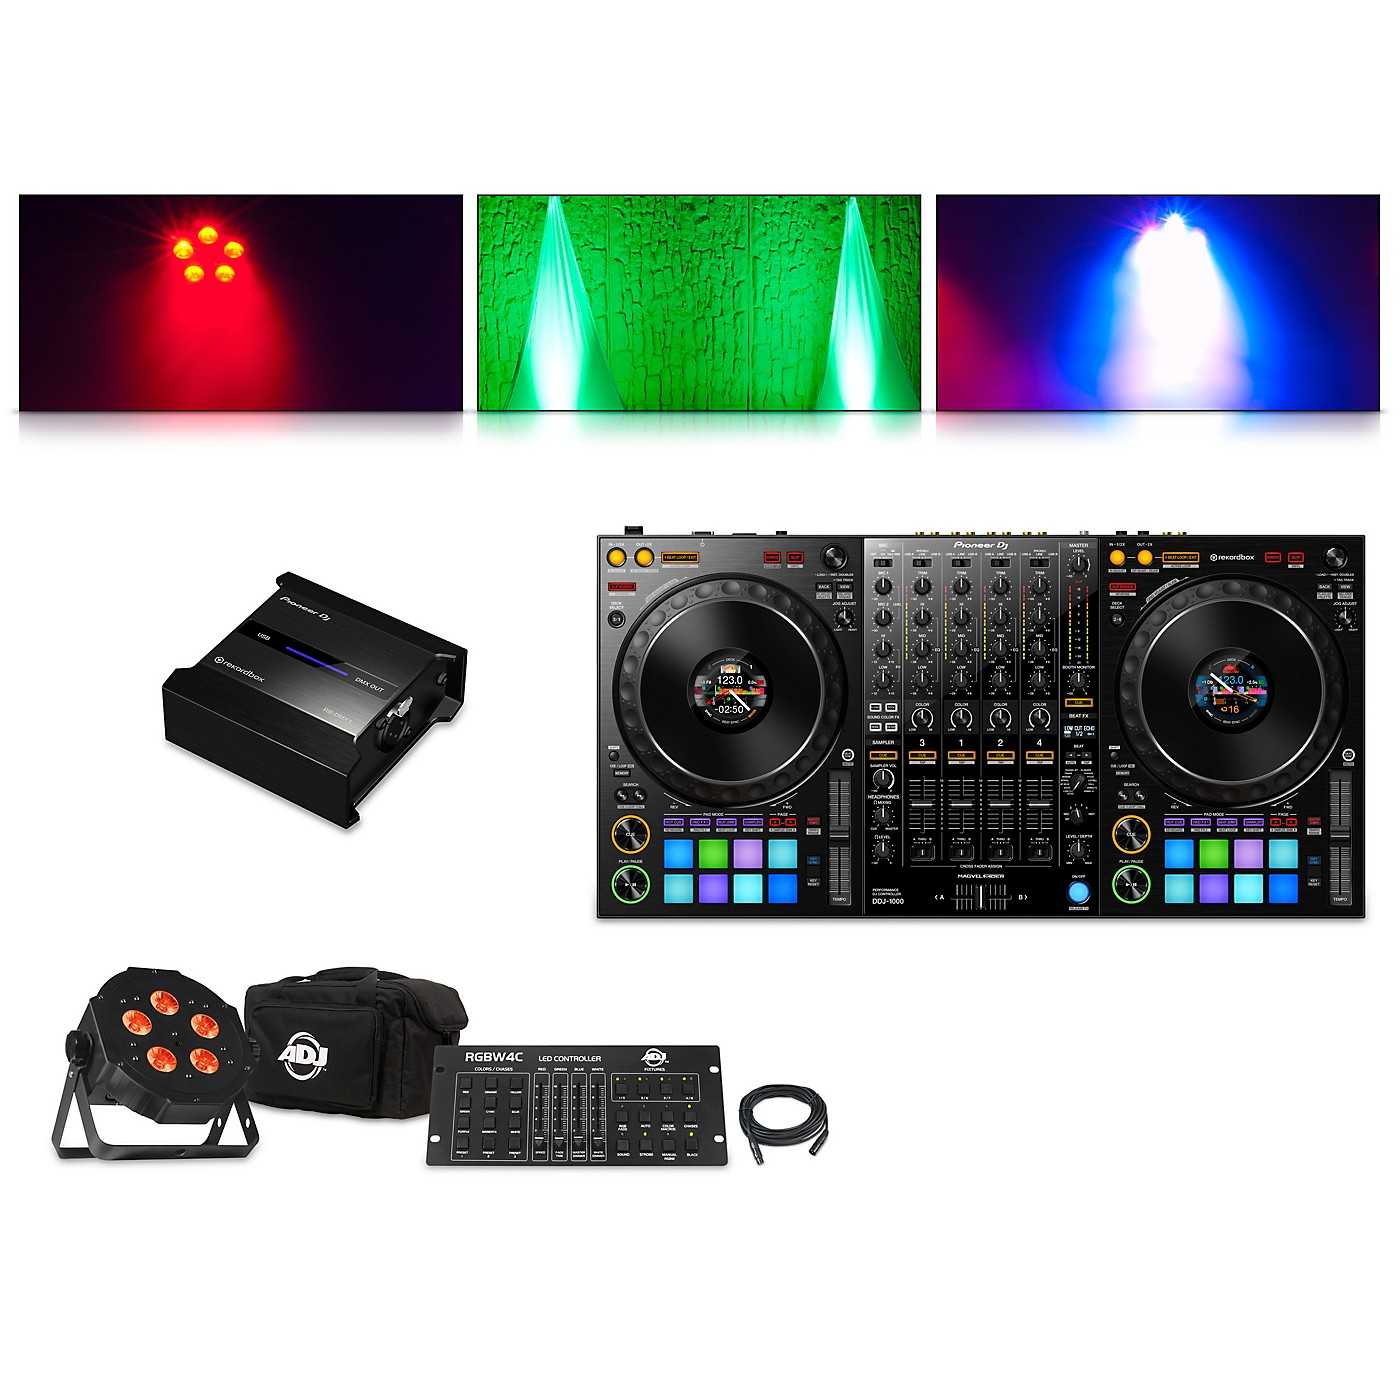 Pioneer DDJ-1000 Performance Controller with RB-DMX1 Lighting Controller and ADJ Ultra Quad Pak Pro thumbnail